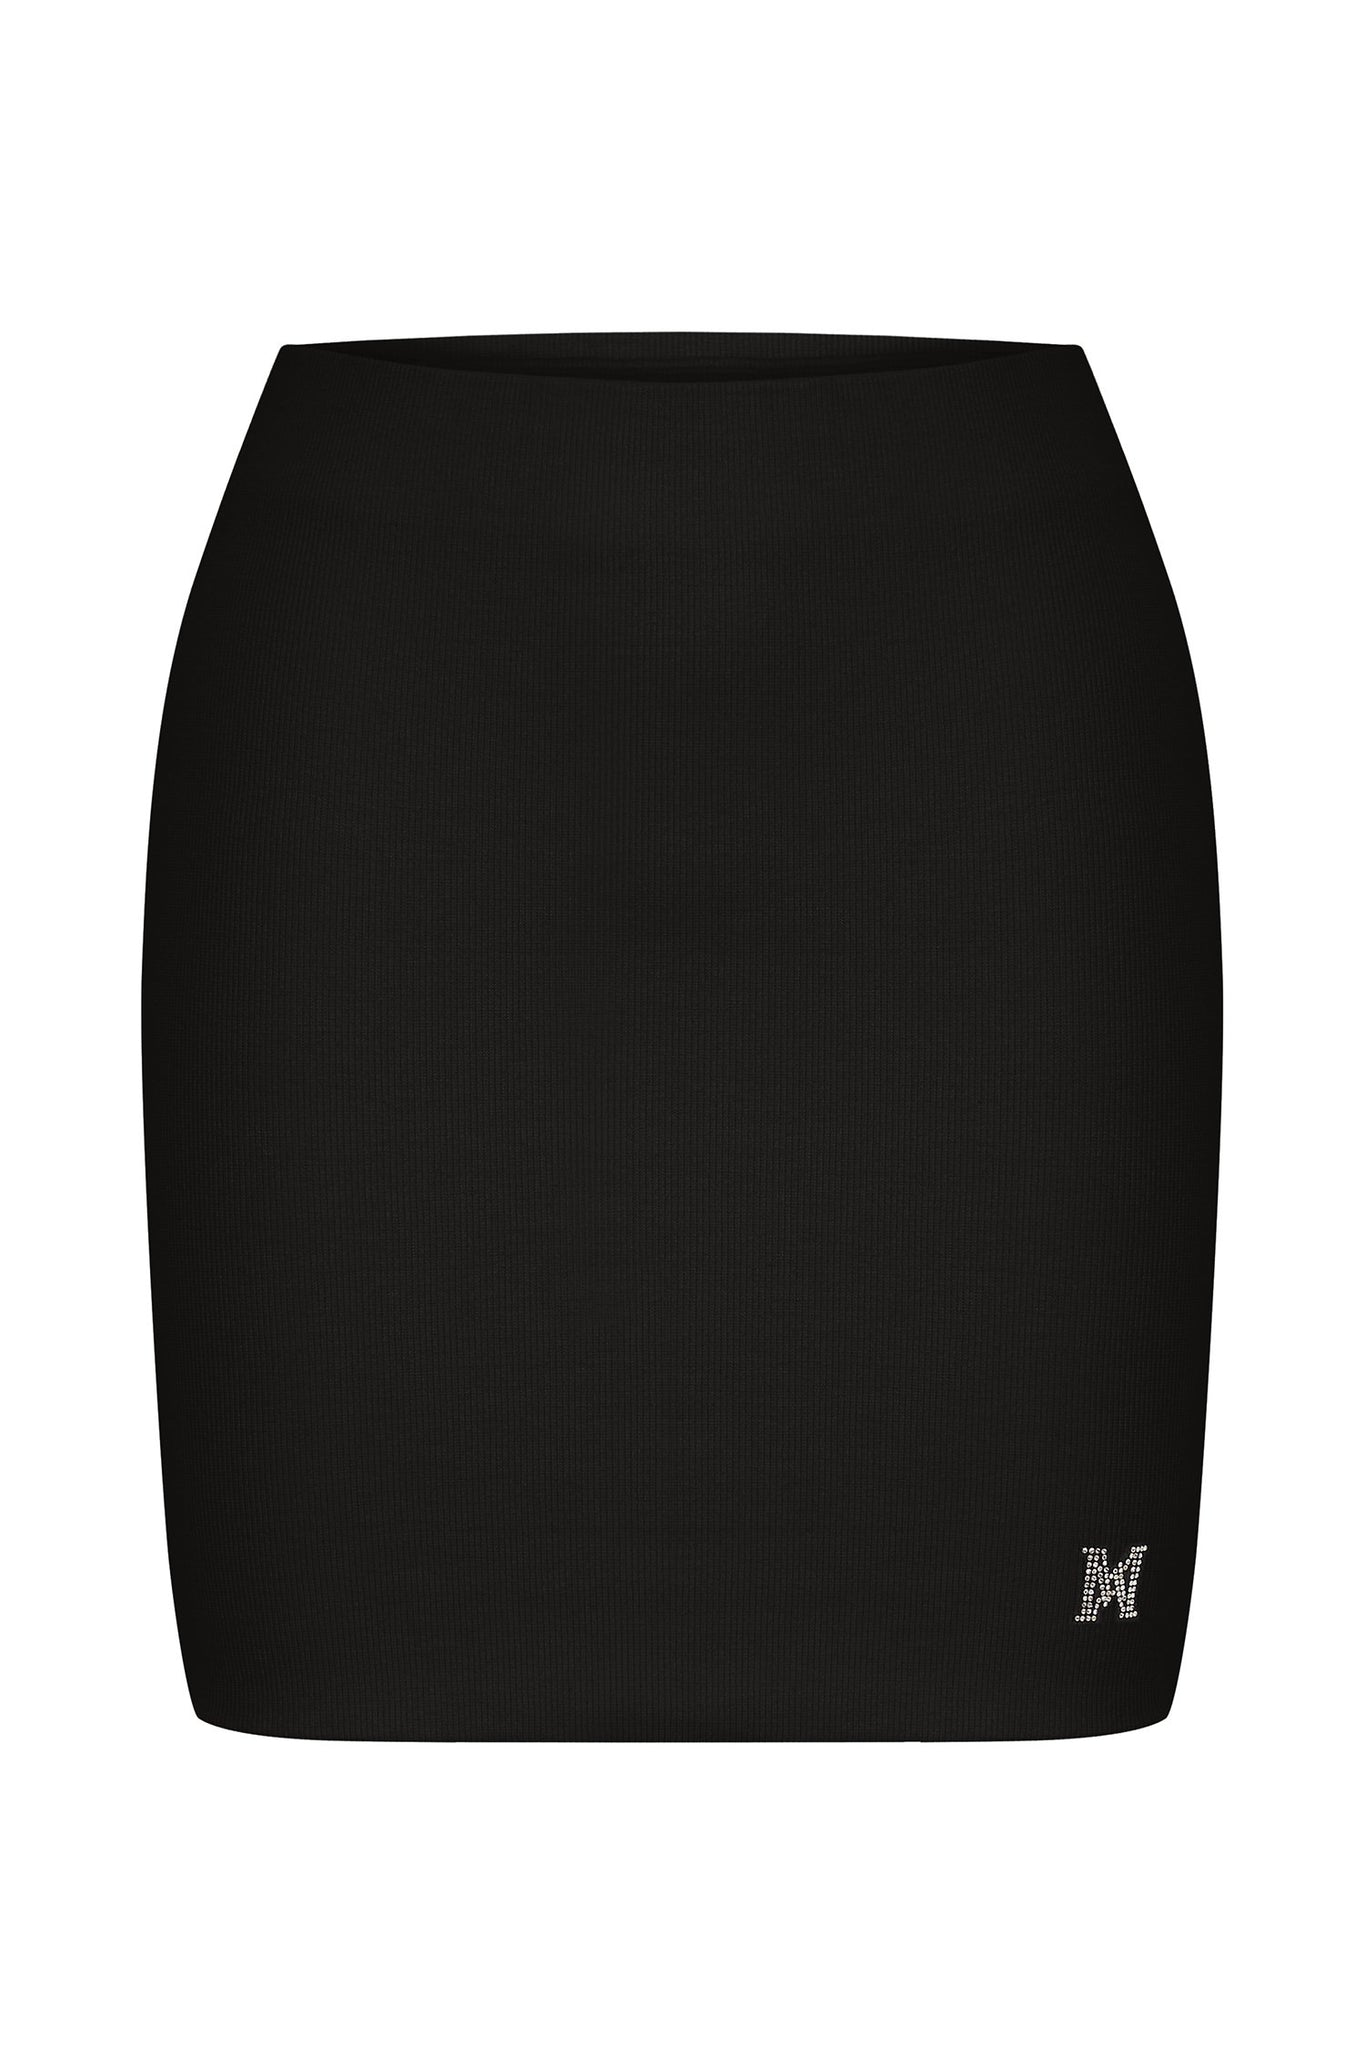 Brittney Mini Skirt - Black - MESHKI